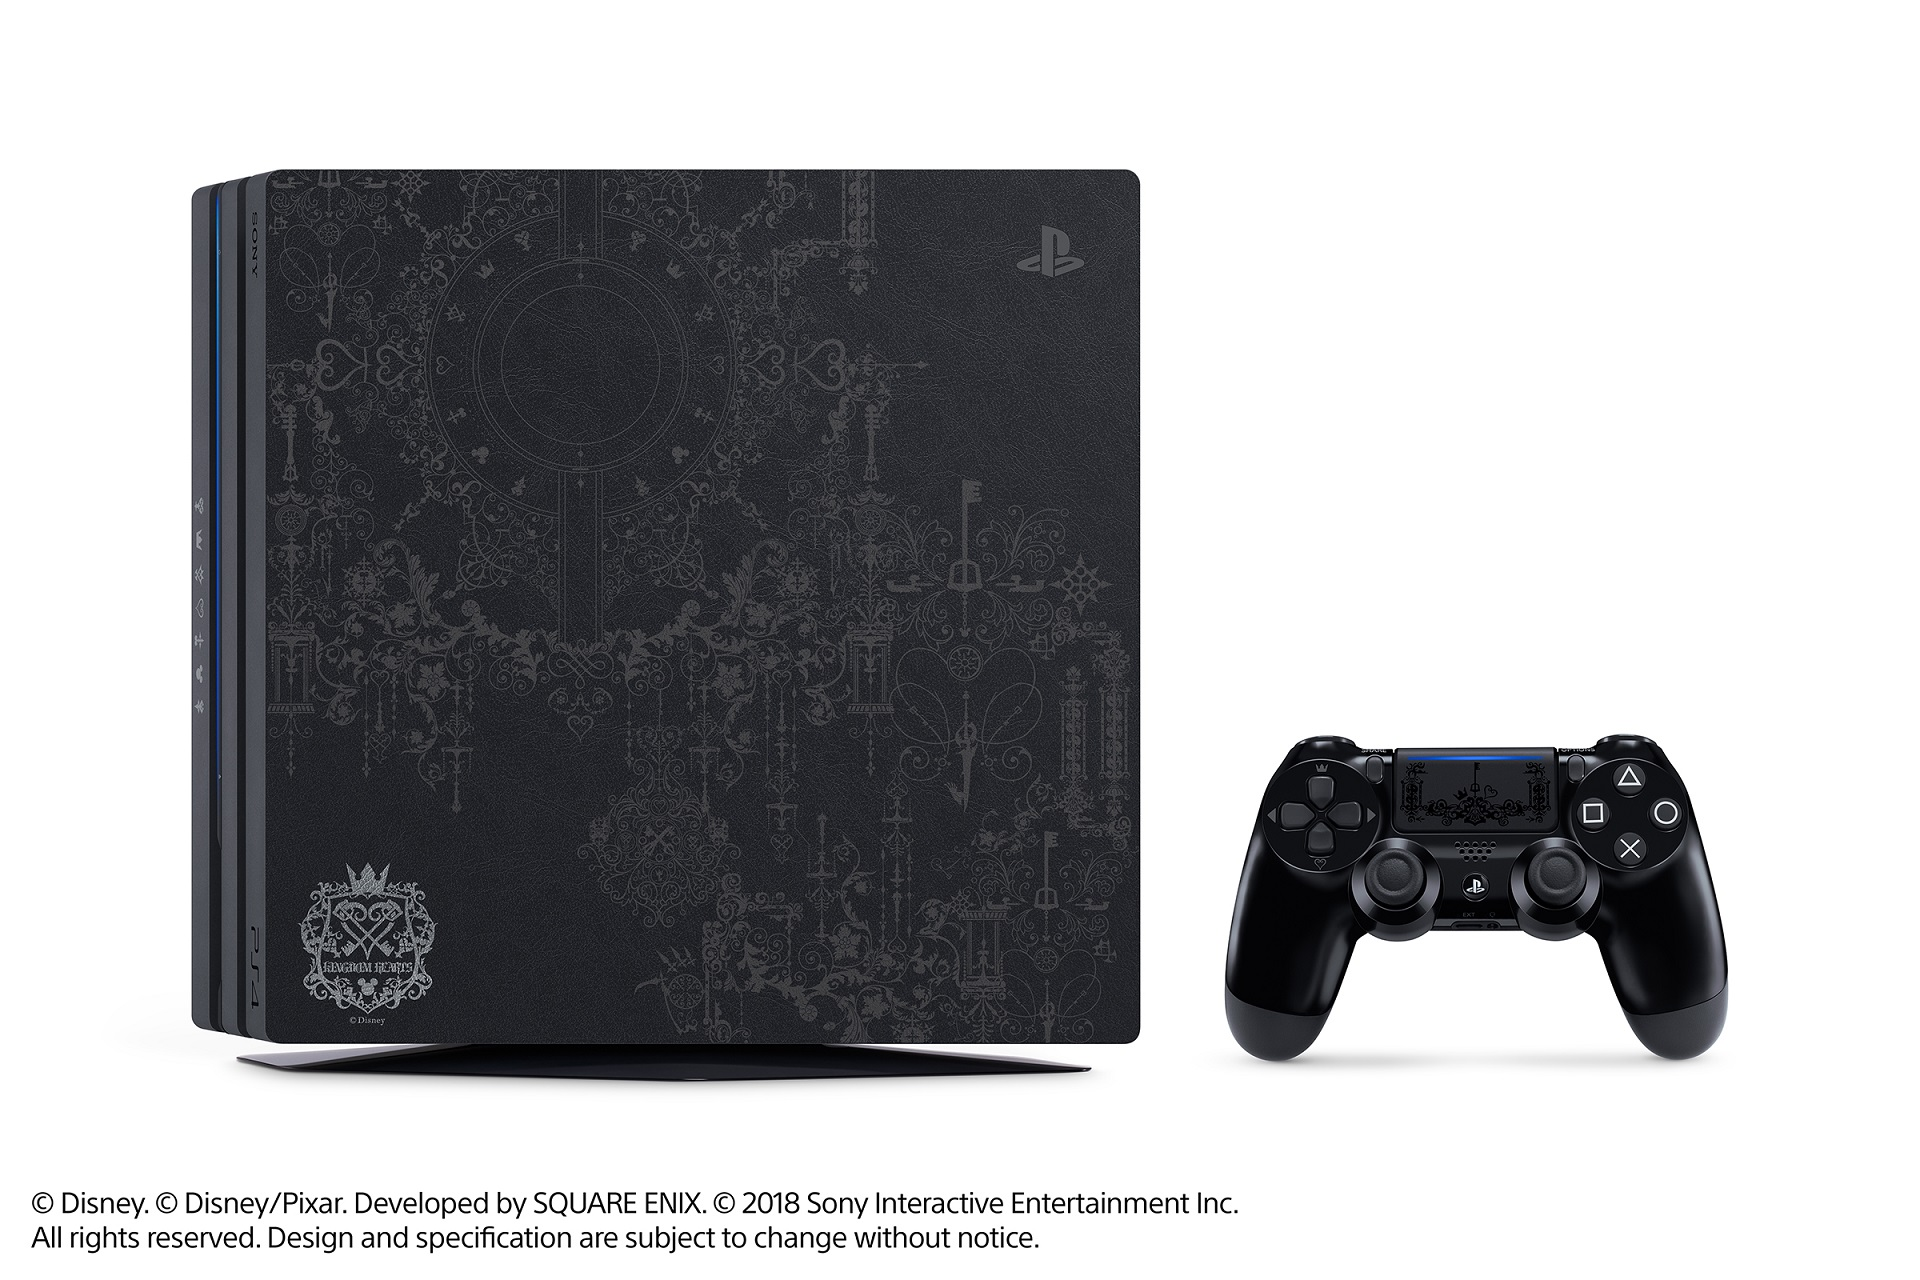 PS4 Pro Kingdom Hearts III Bundle Details